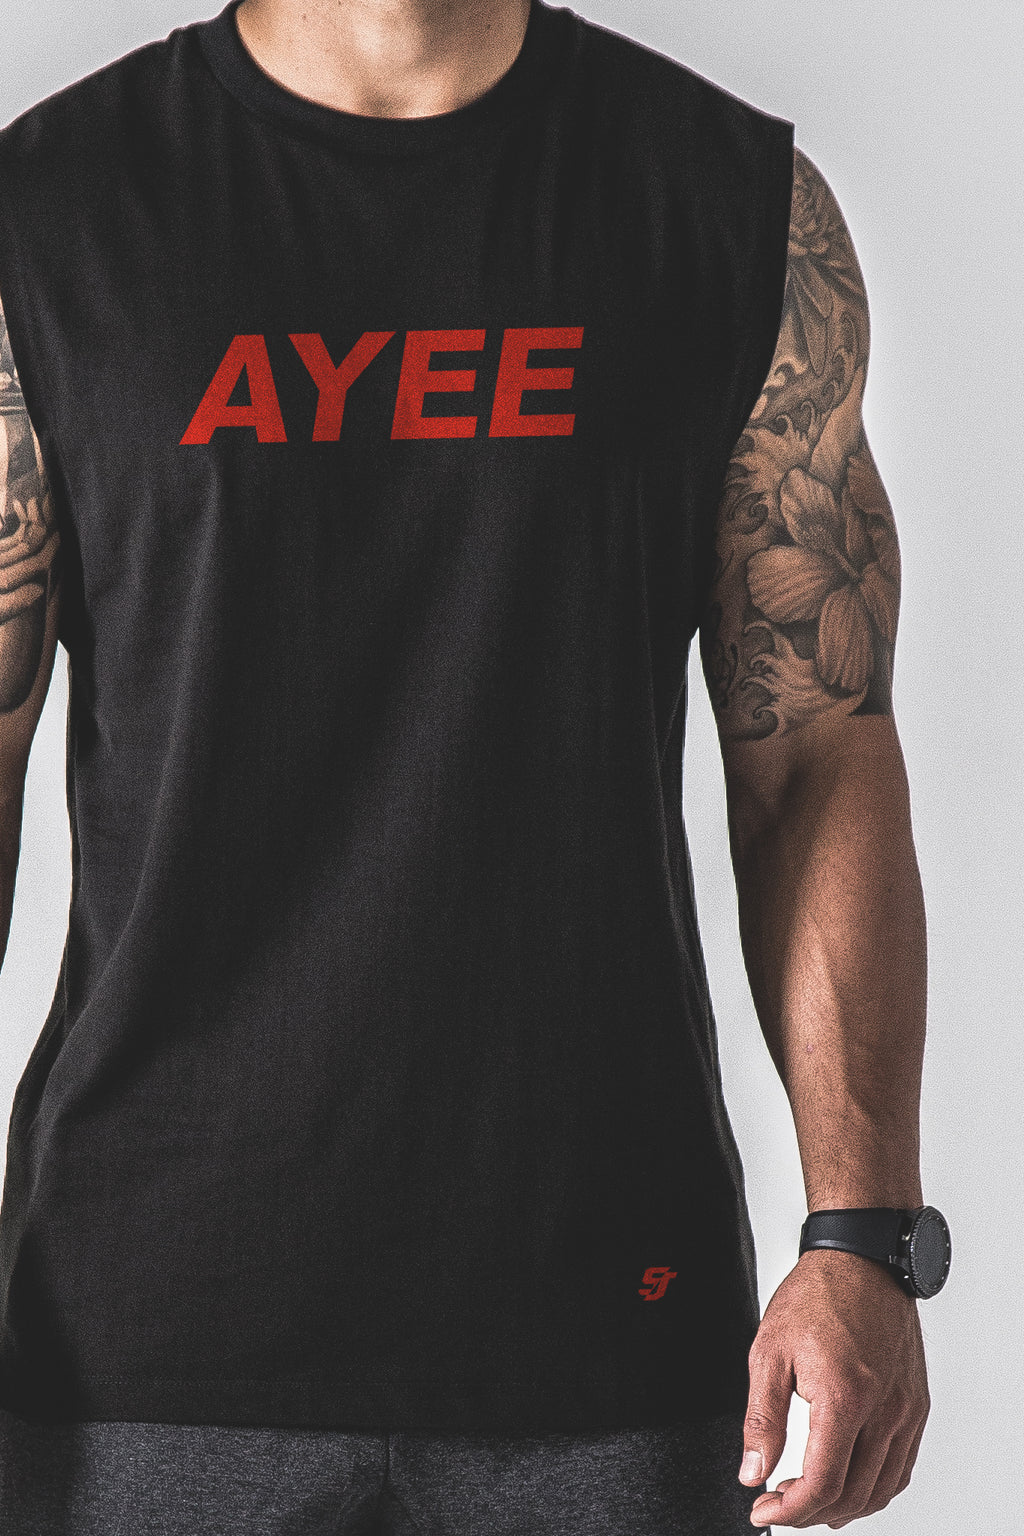 SJ Ayee Tank - Black / Red